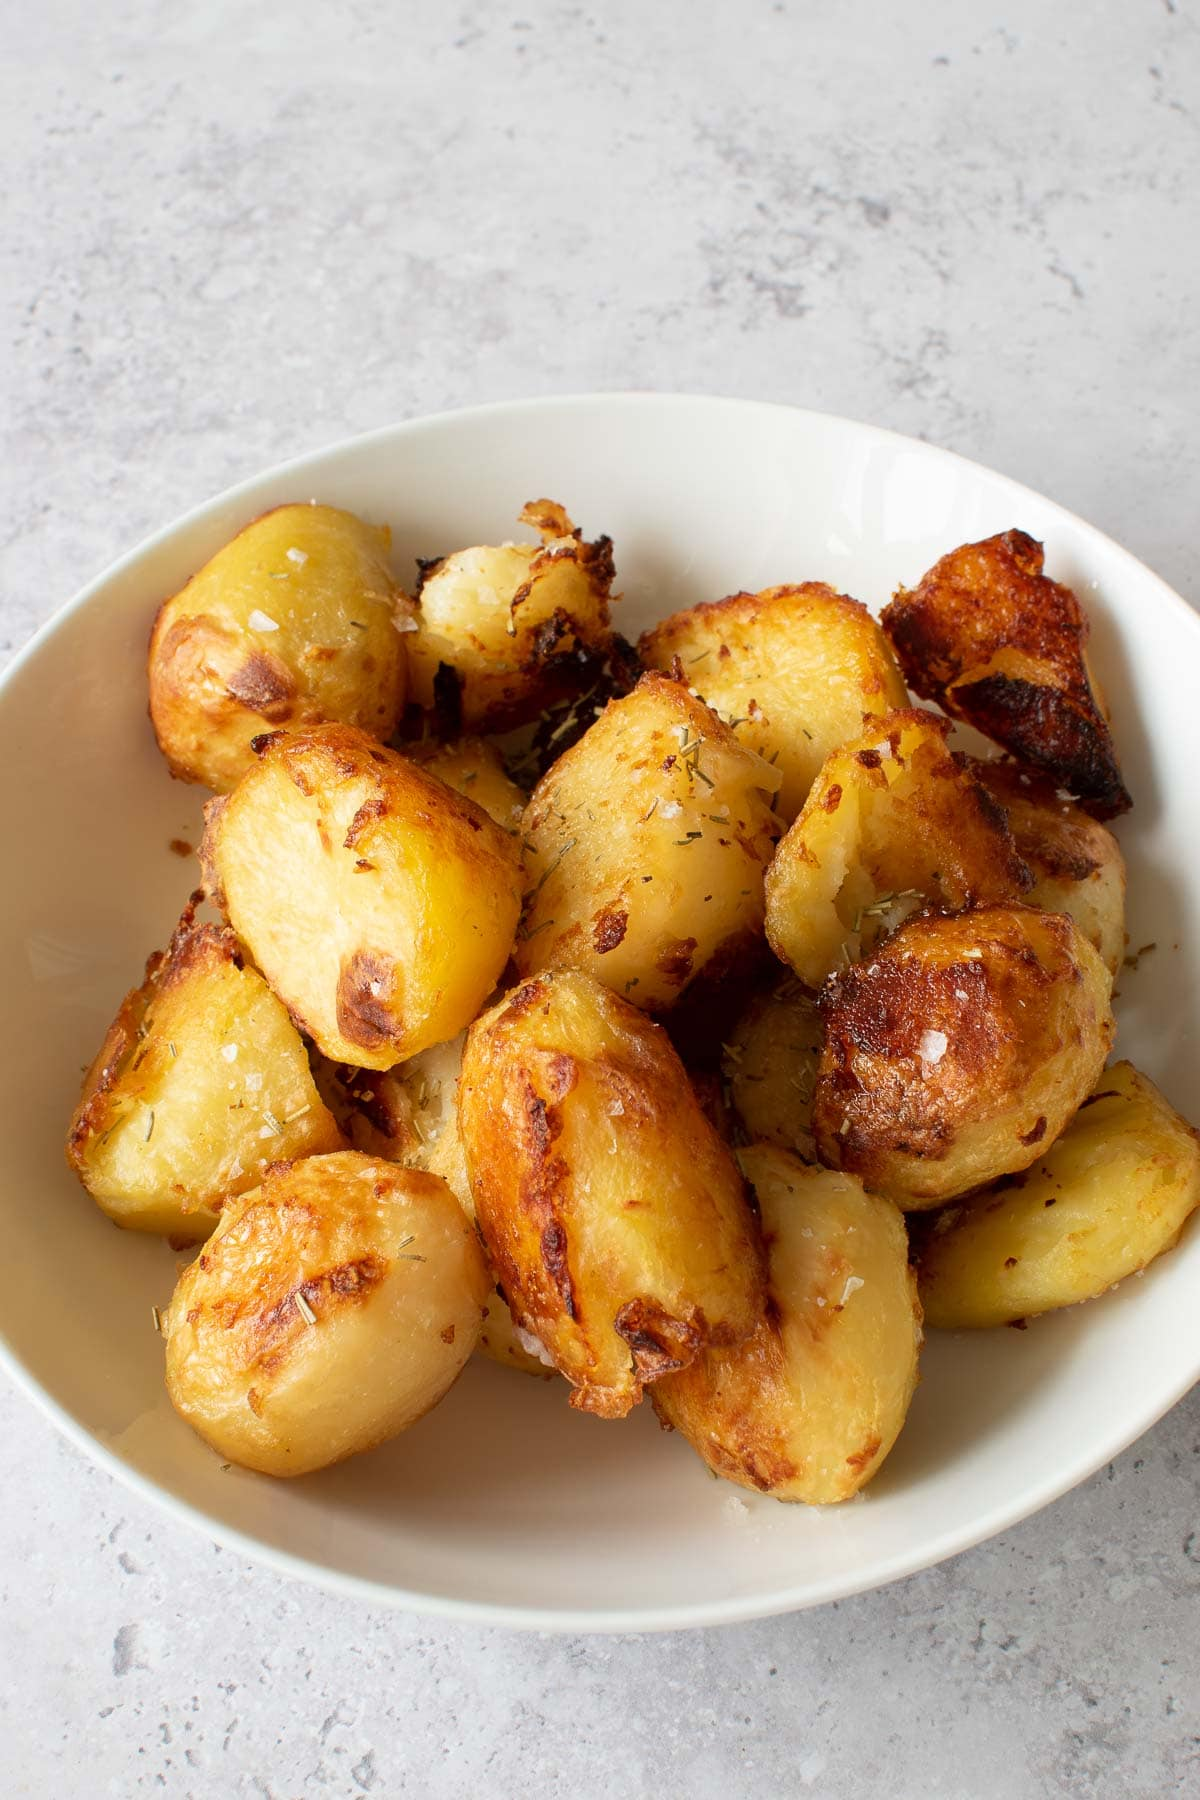 Rosemary roasted potatoes in a bowl.